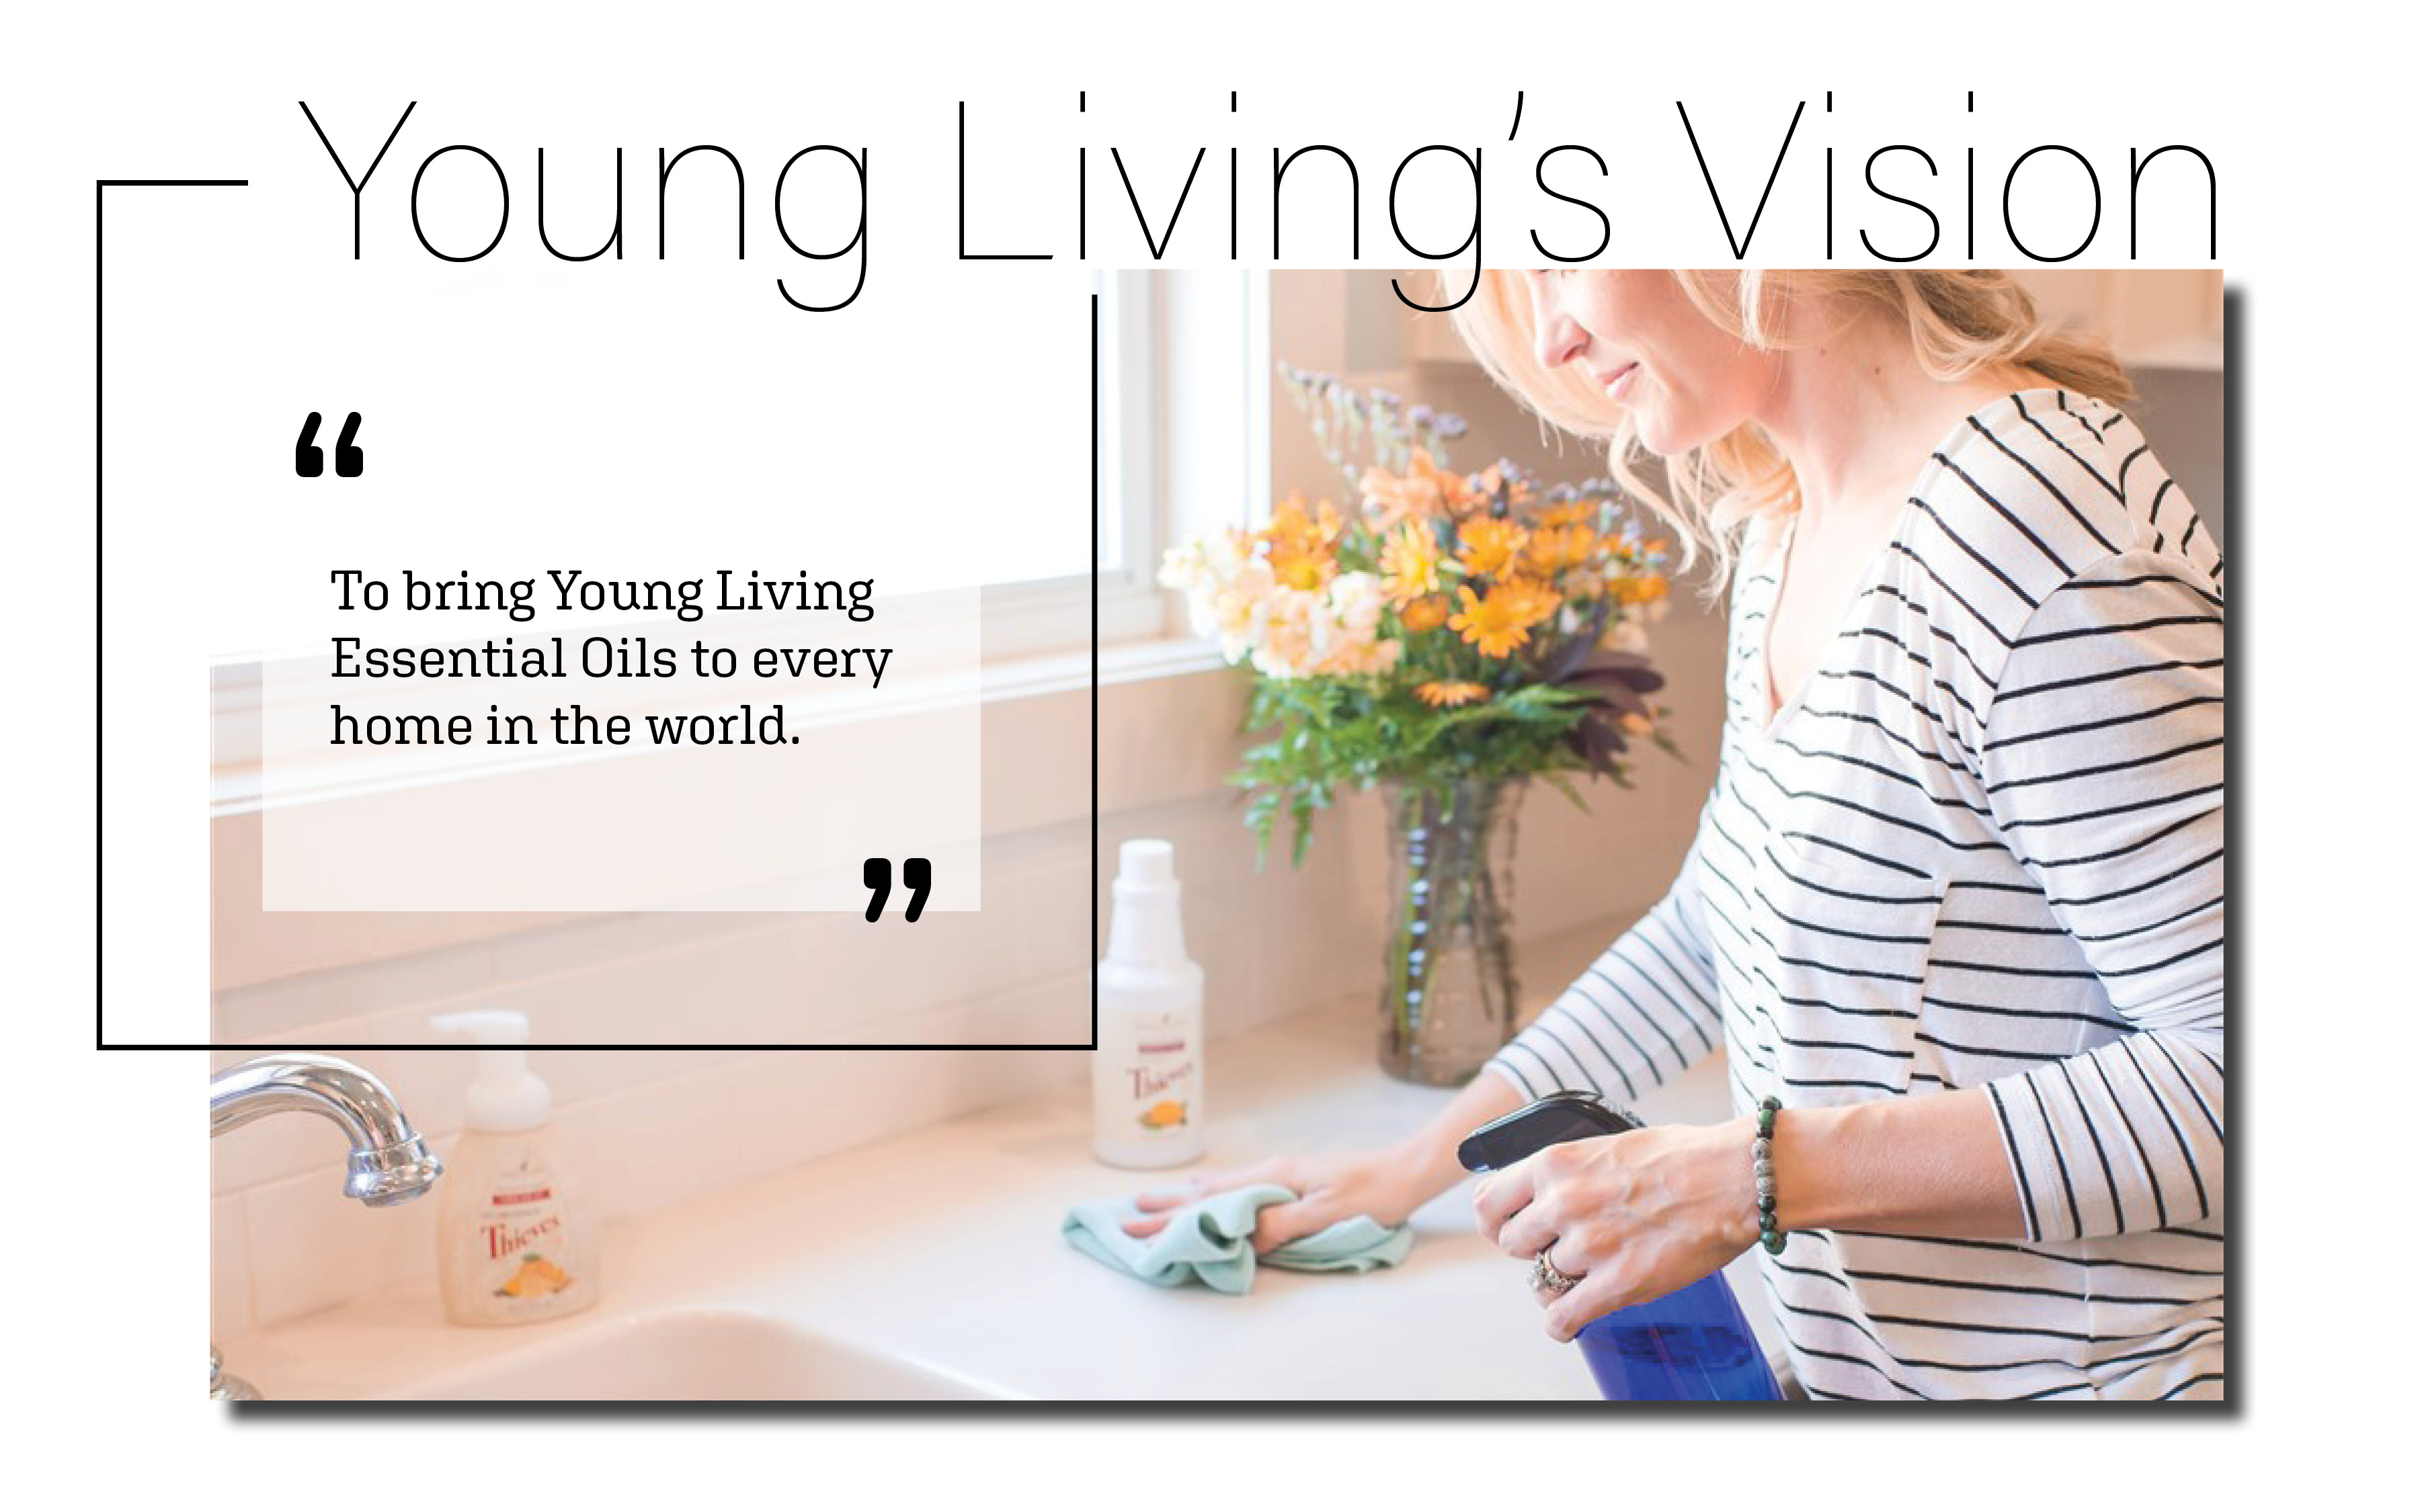 the vision on young living